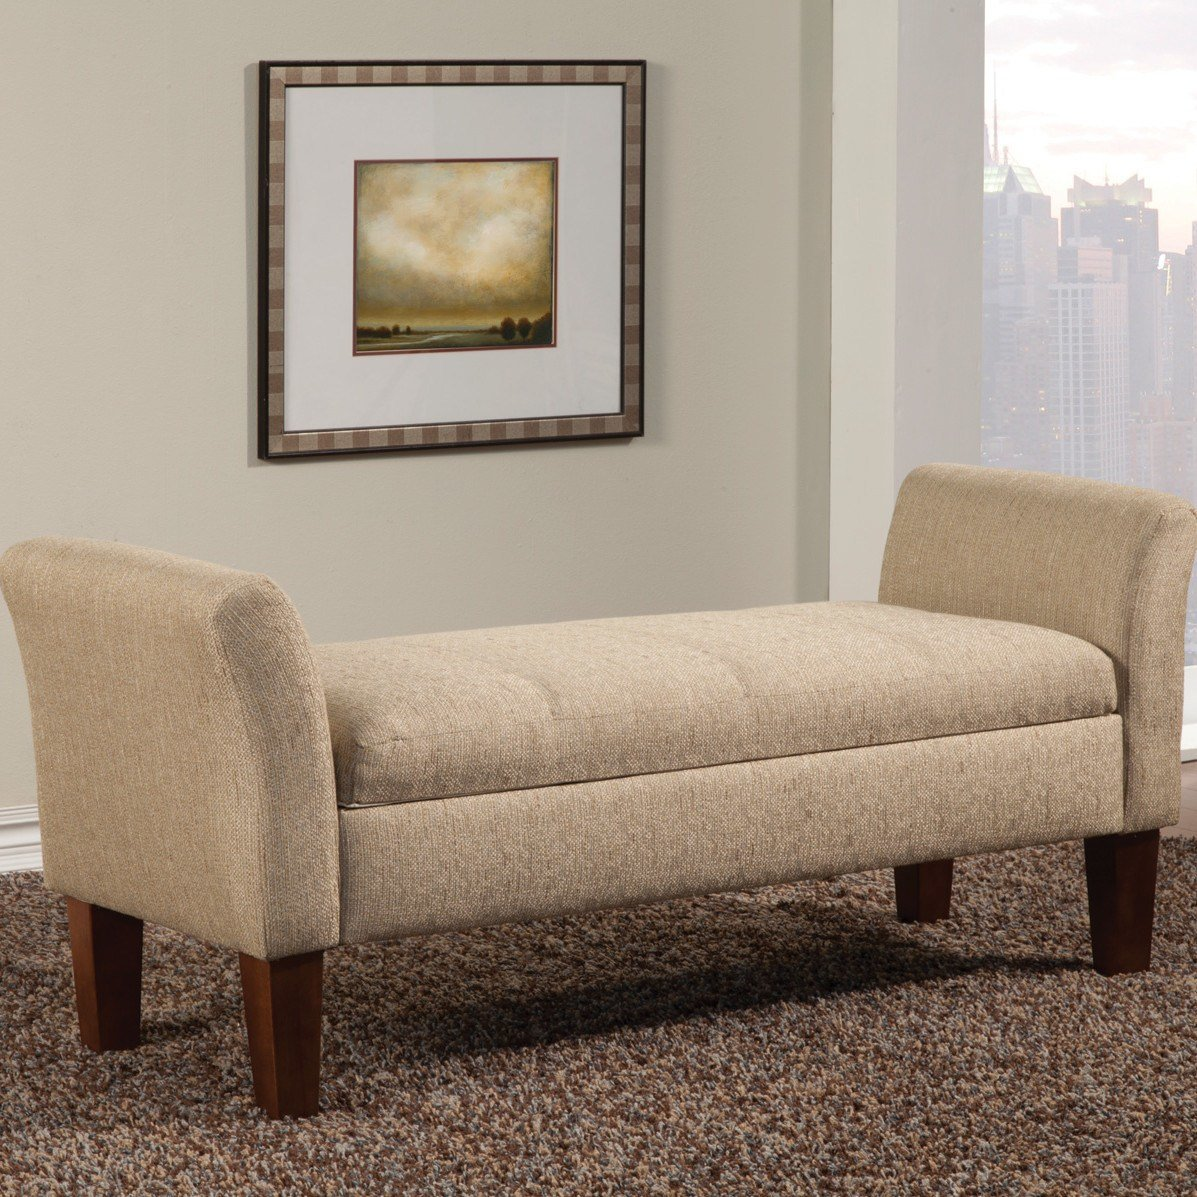 Best Wildon Home ® Upholstered Storage Bedroom Bench Ebay With Pictures